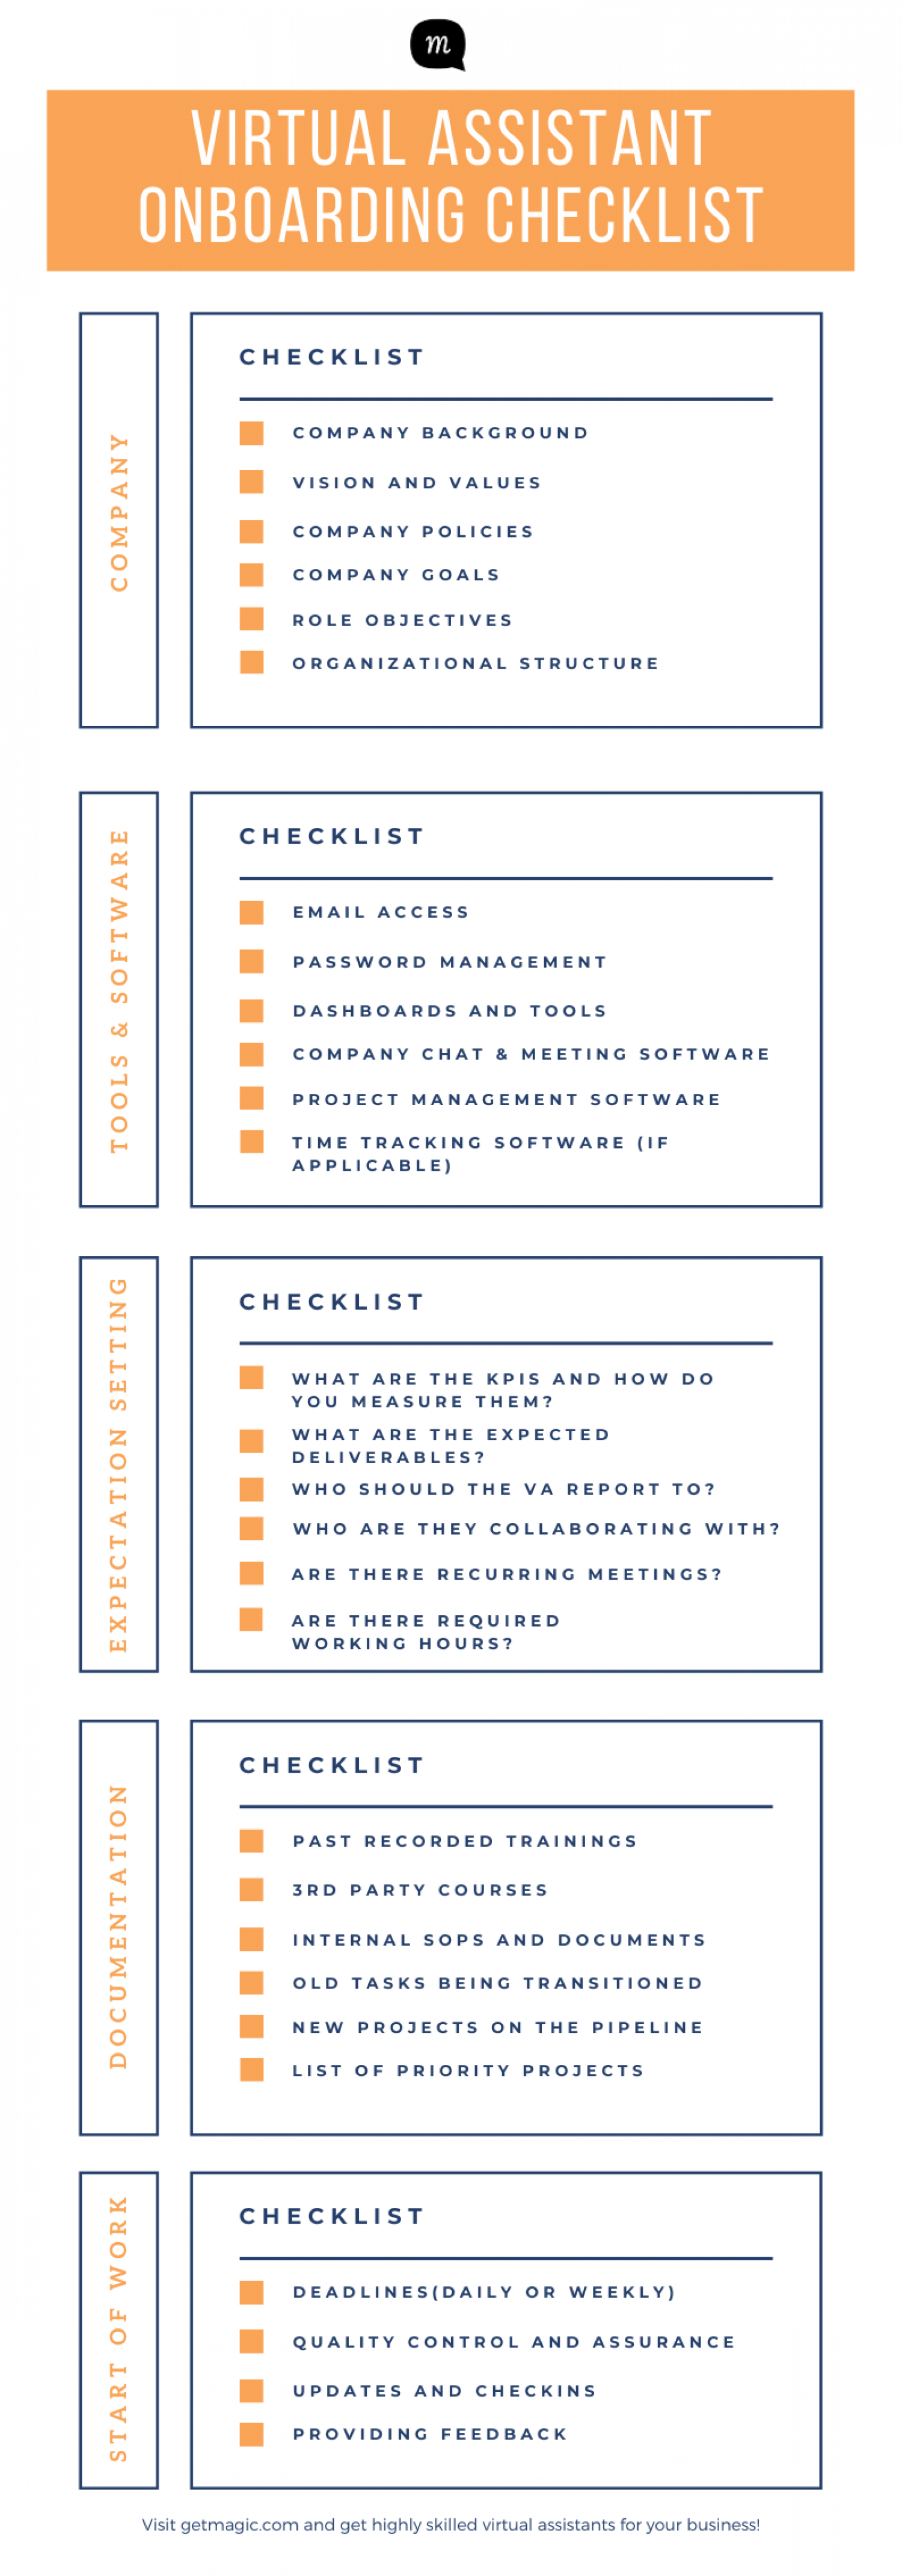 The Onboarding Checklist to Set Up Your New Virtual Assistants for Success Infographic